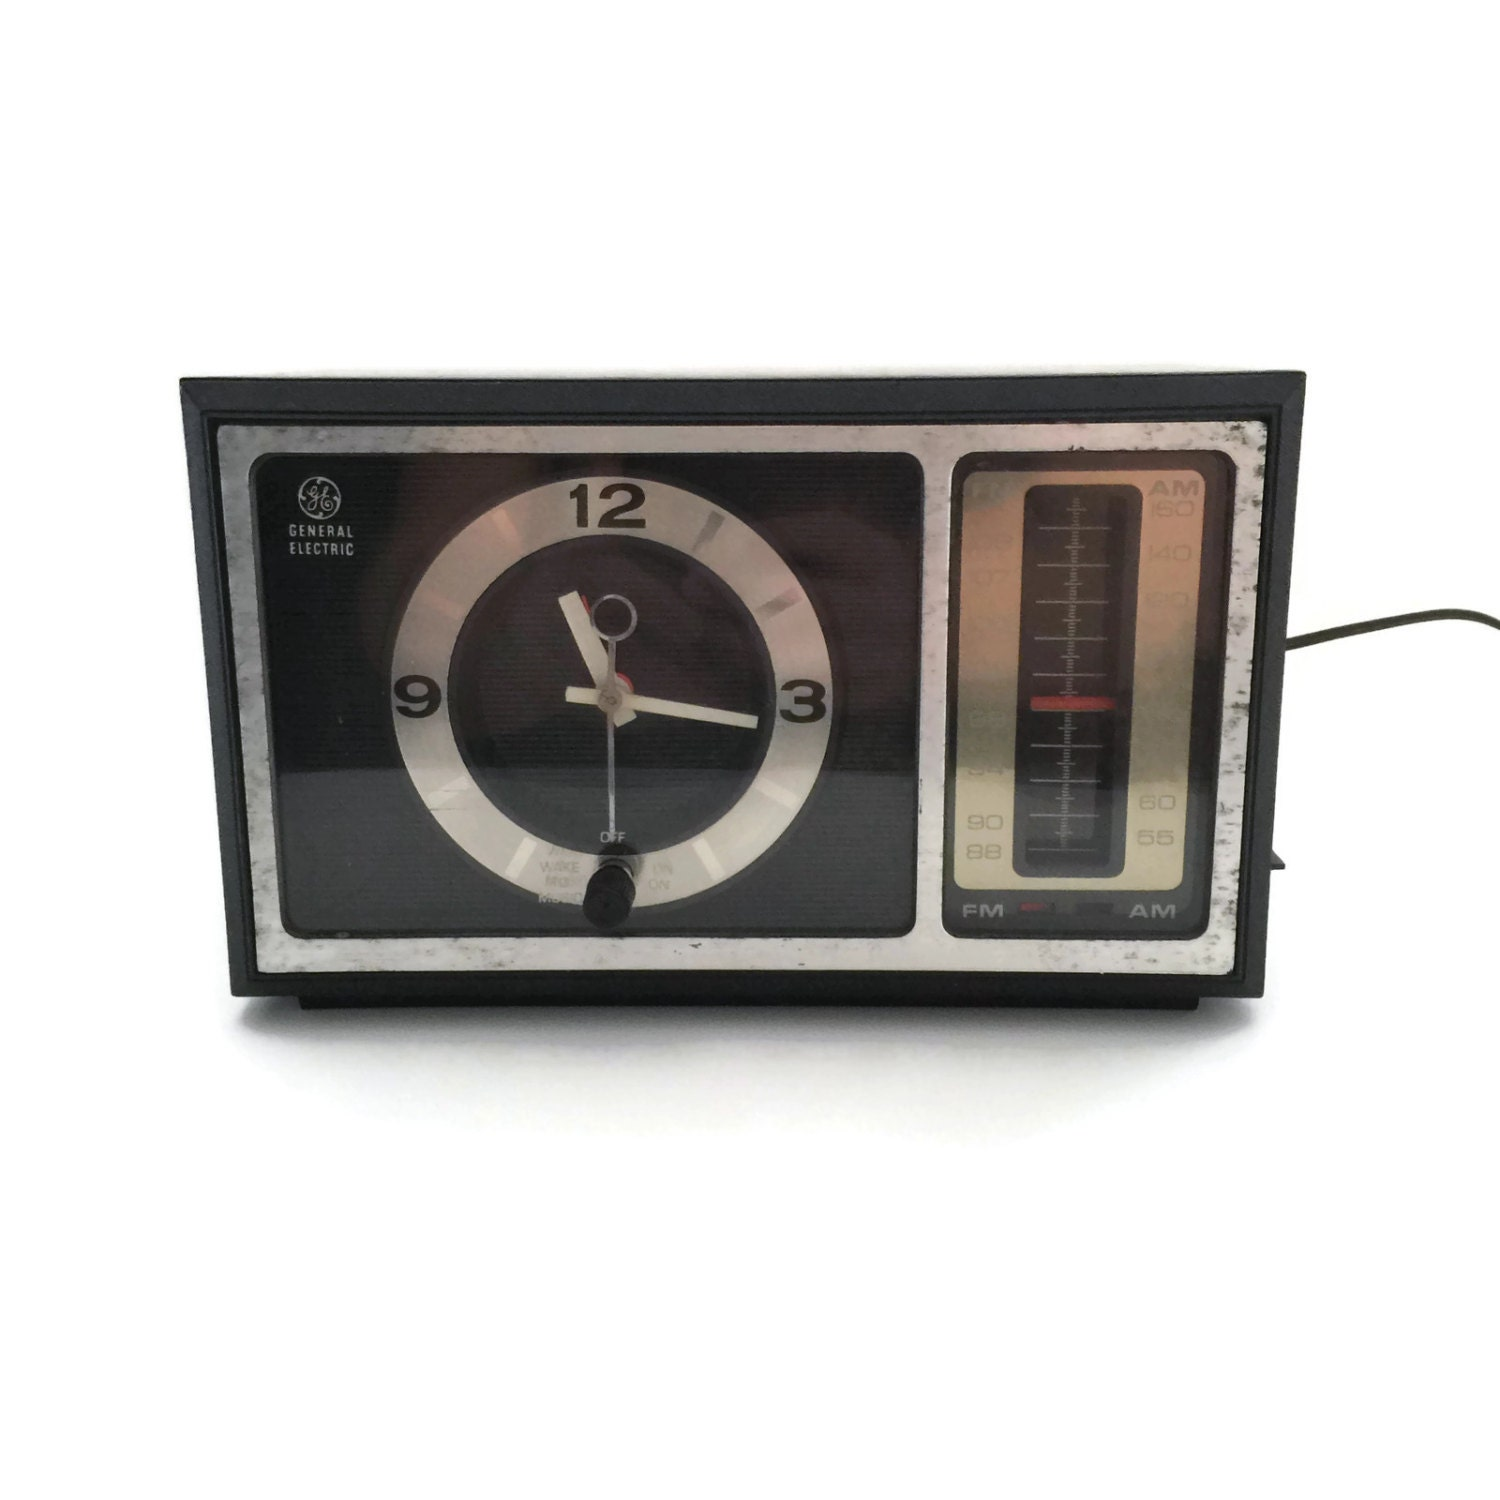 Retro Clock Radio Vintage Clock Radio GE Clock Radio FM/AM